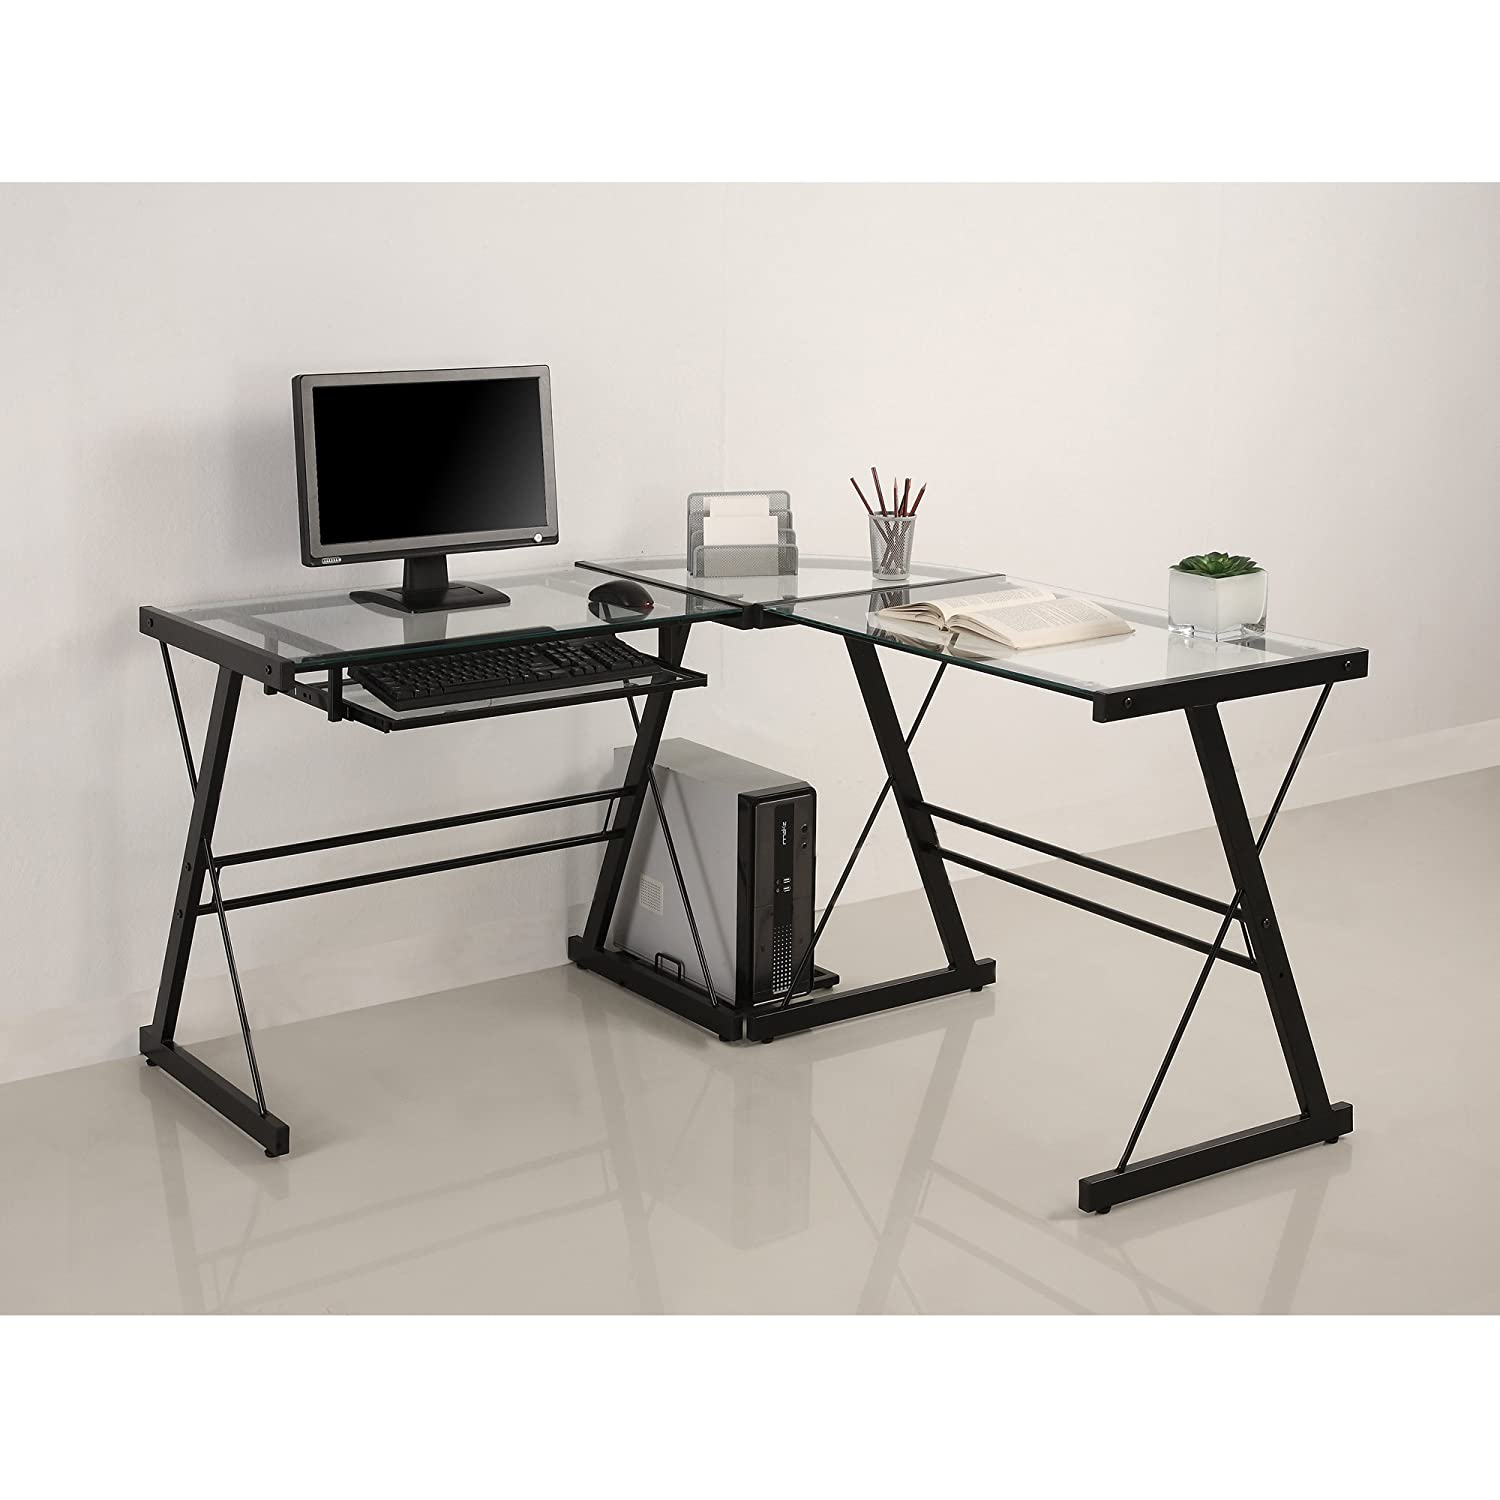 amazoncom walker edison piece contemporary desk multi  - amazoncom walker edison piece contemporary desk multi kitchen  dining